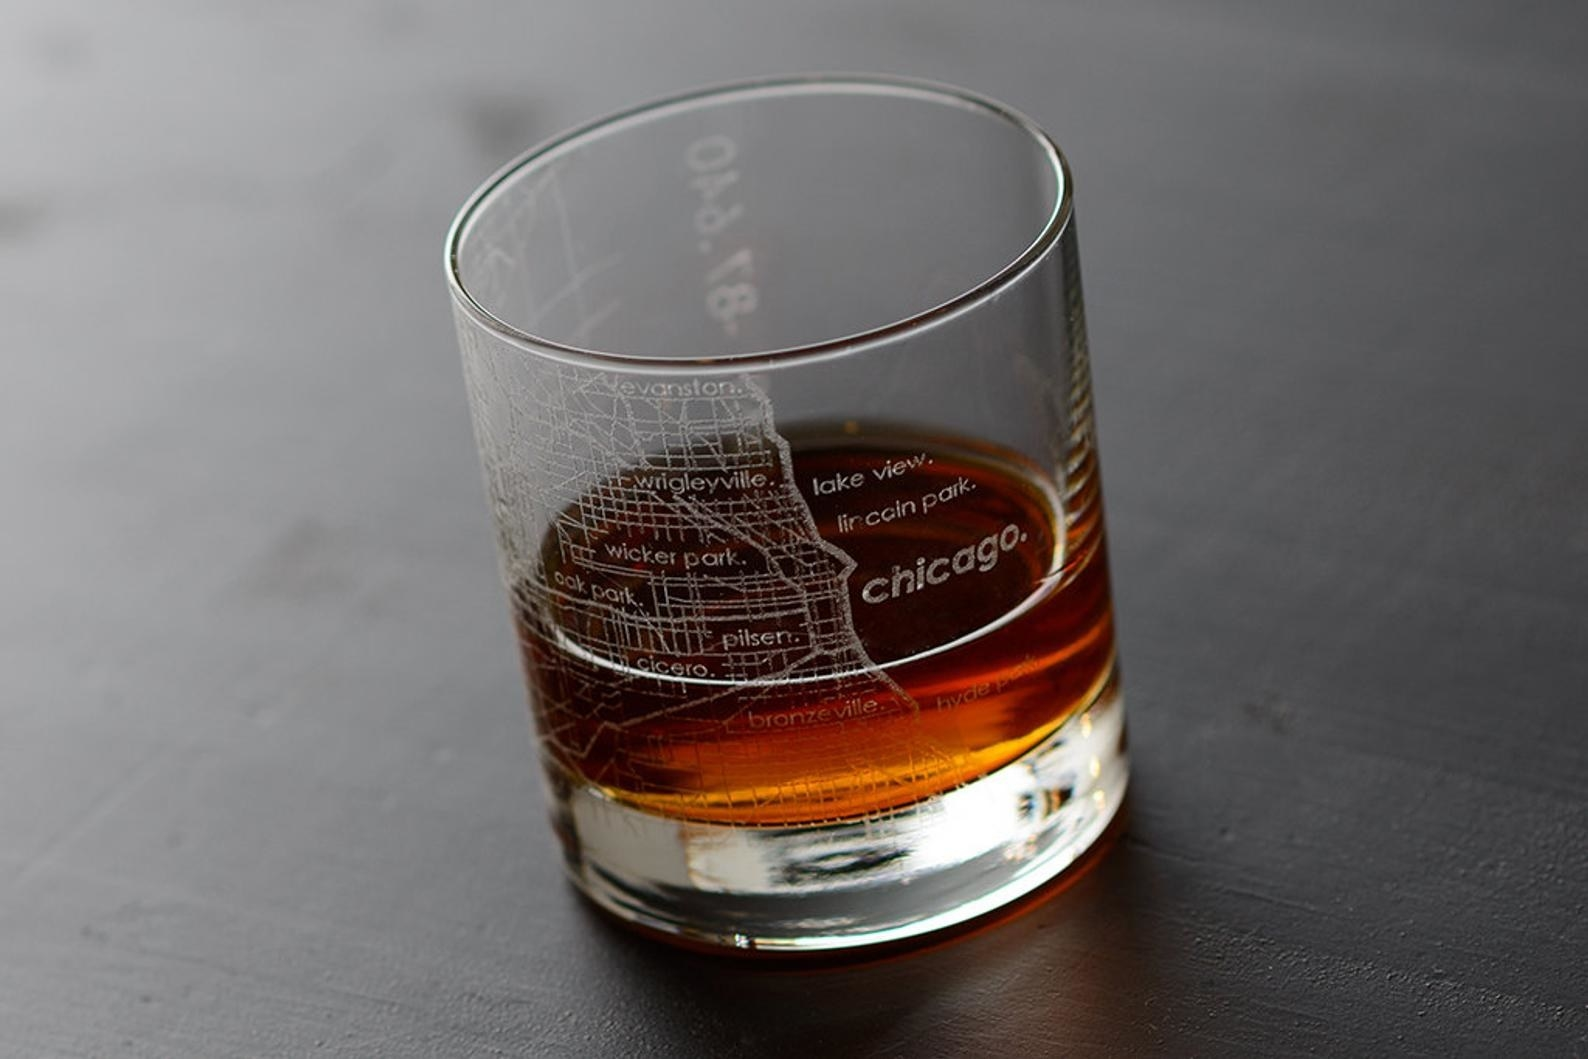 A whiskey tumbler with the map of Chicago etched on it